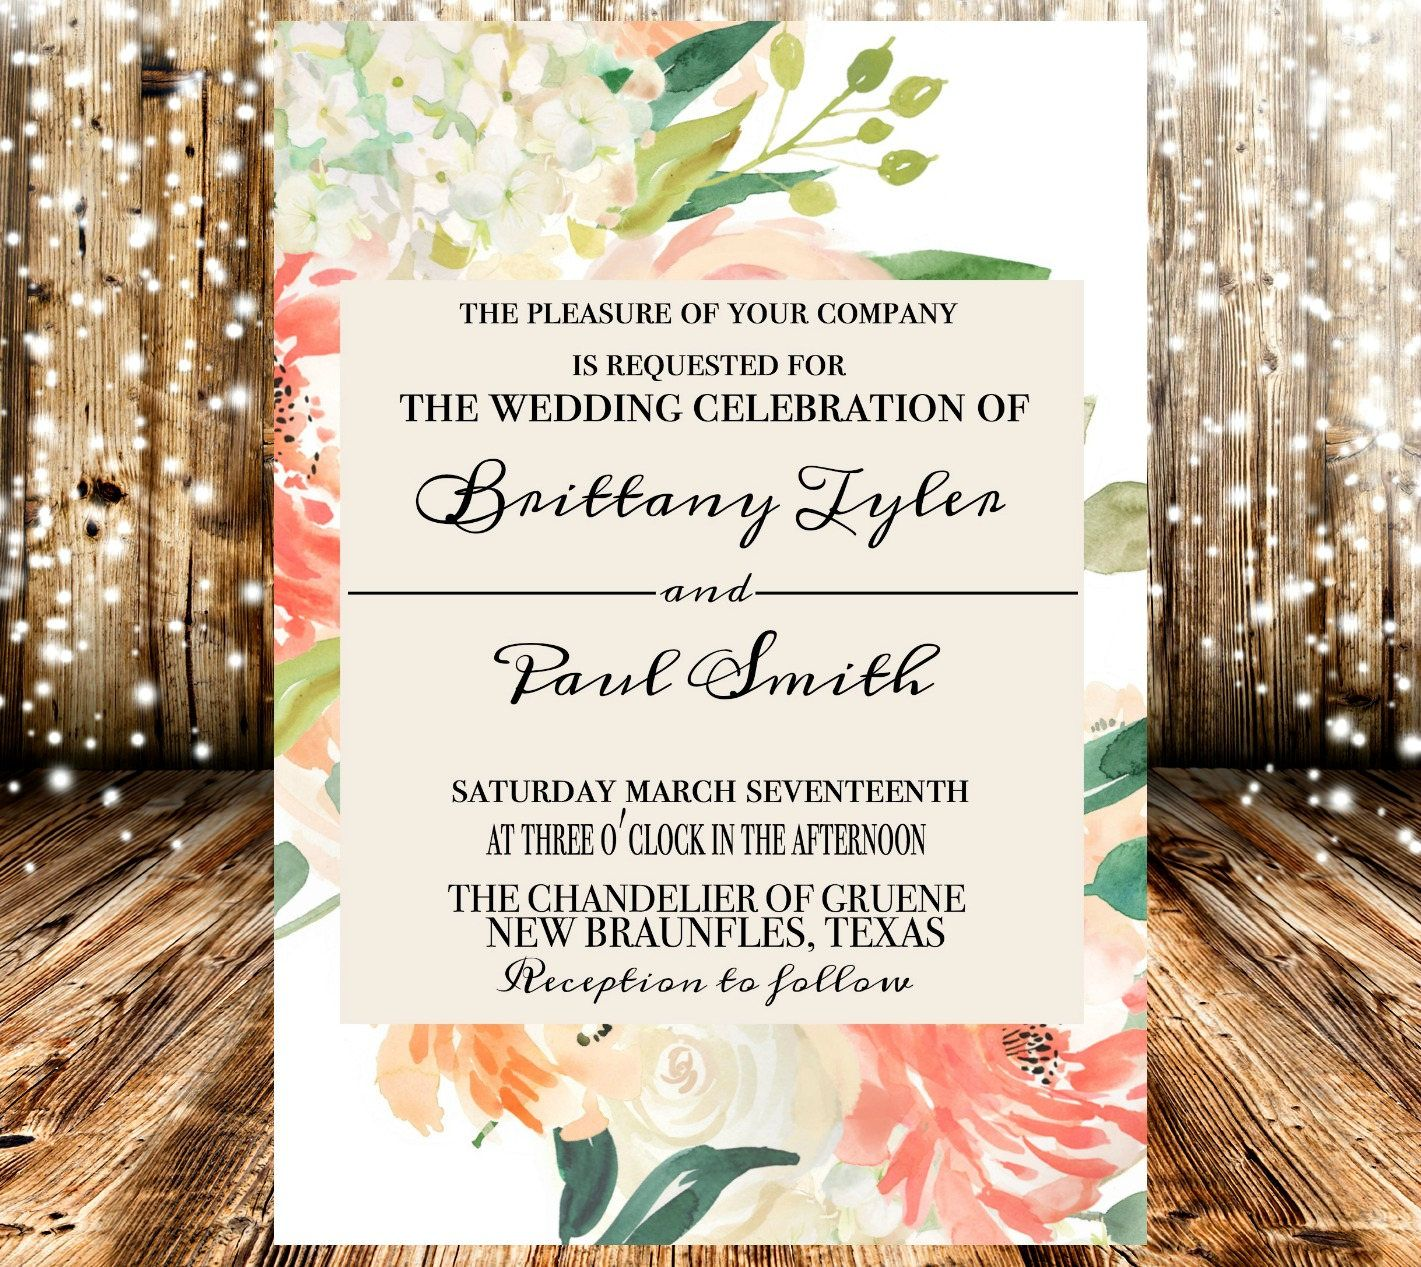 Celebrity Wedding Invites: Peach Cream White Floral Chic Rustic Country Wedding